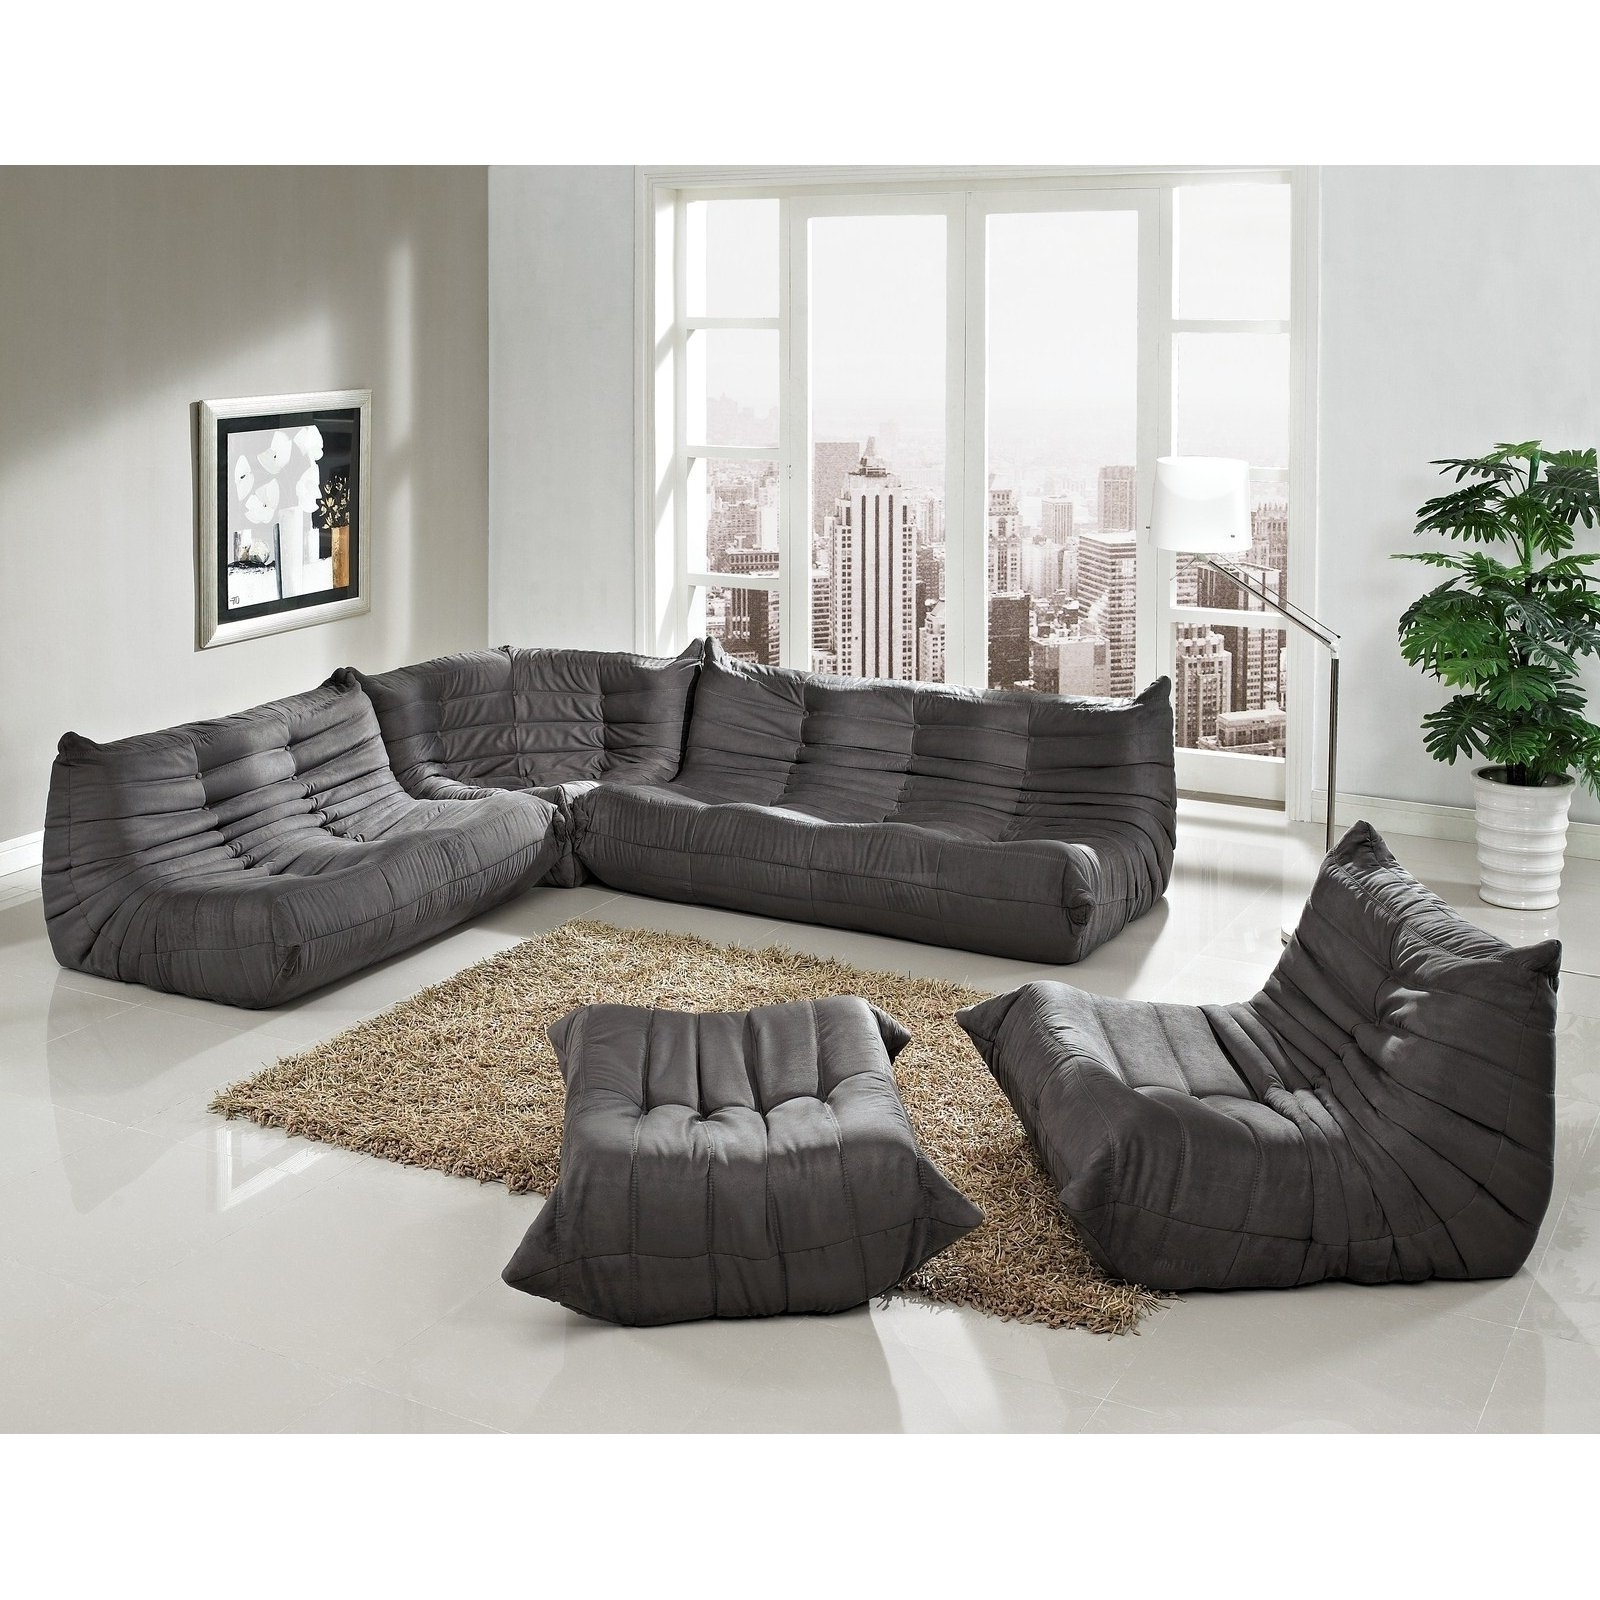 Low Sofas Throughout Trendy Beautiful Low Profile Sectional Sofa 40 On Sofas And Couches Ideas (View 8 of 15)